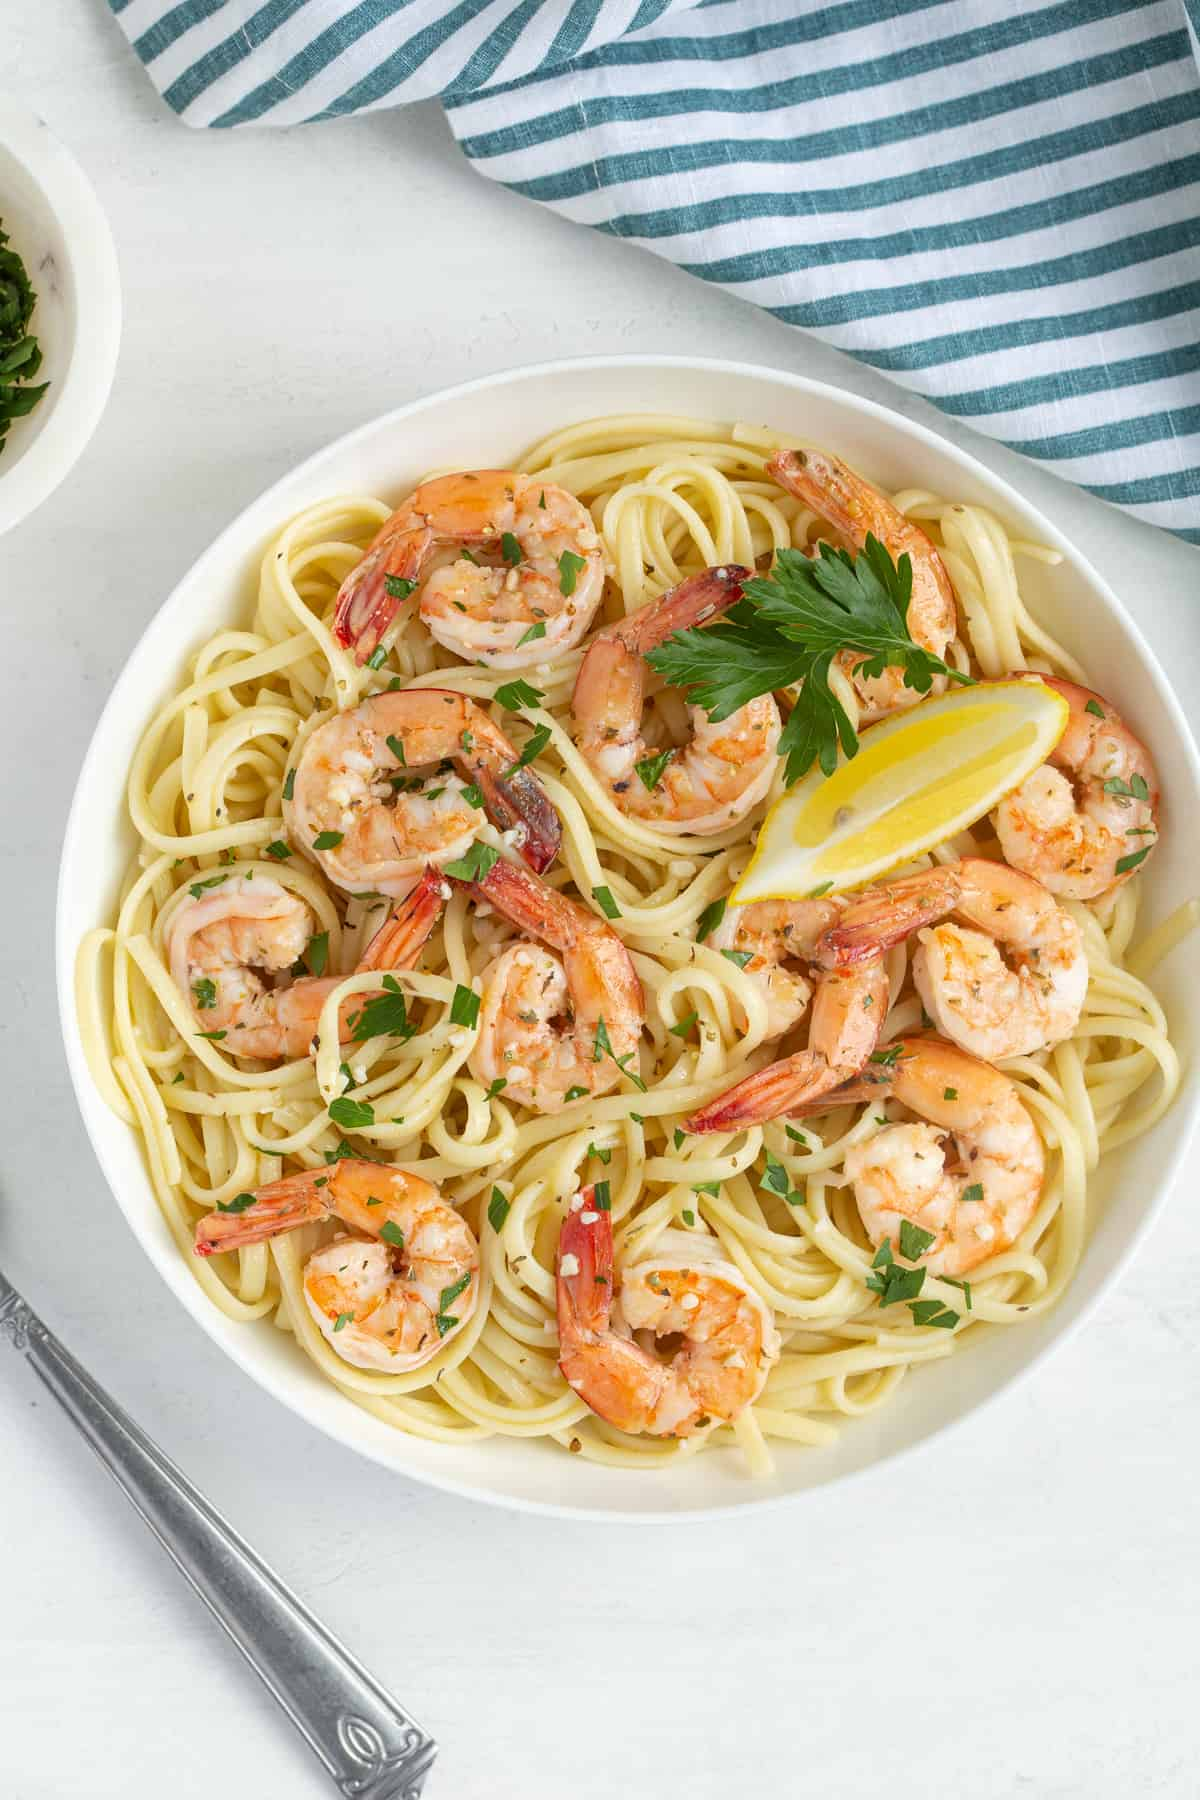 Overhead view of shrimp scampi pasta in a white bowl by a striped towel and a fork.